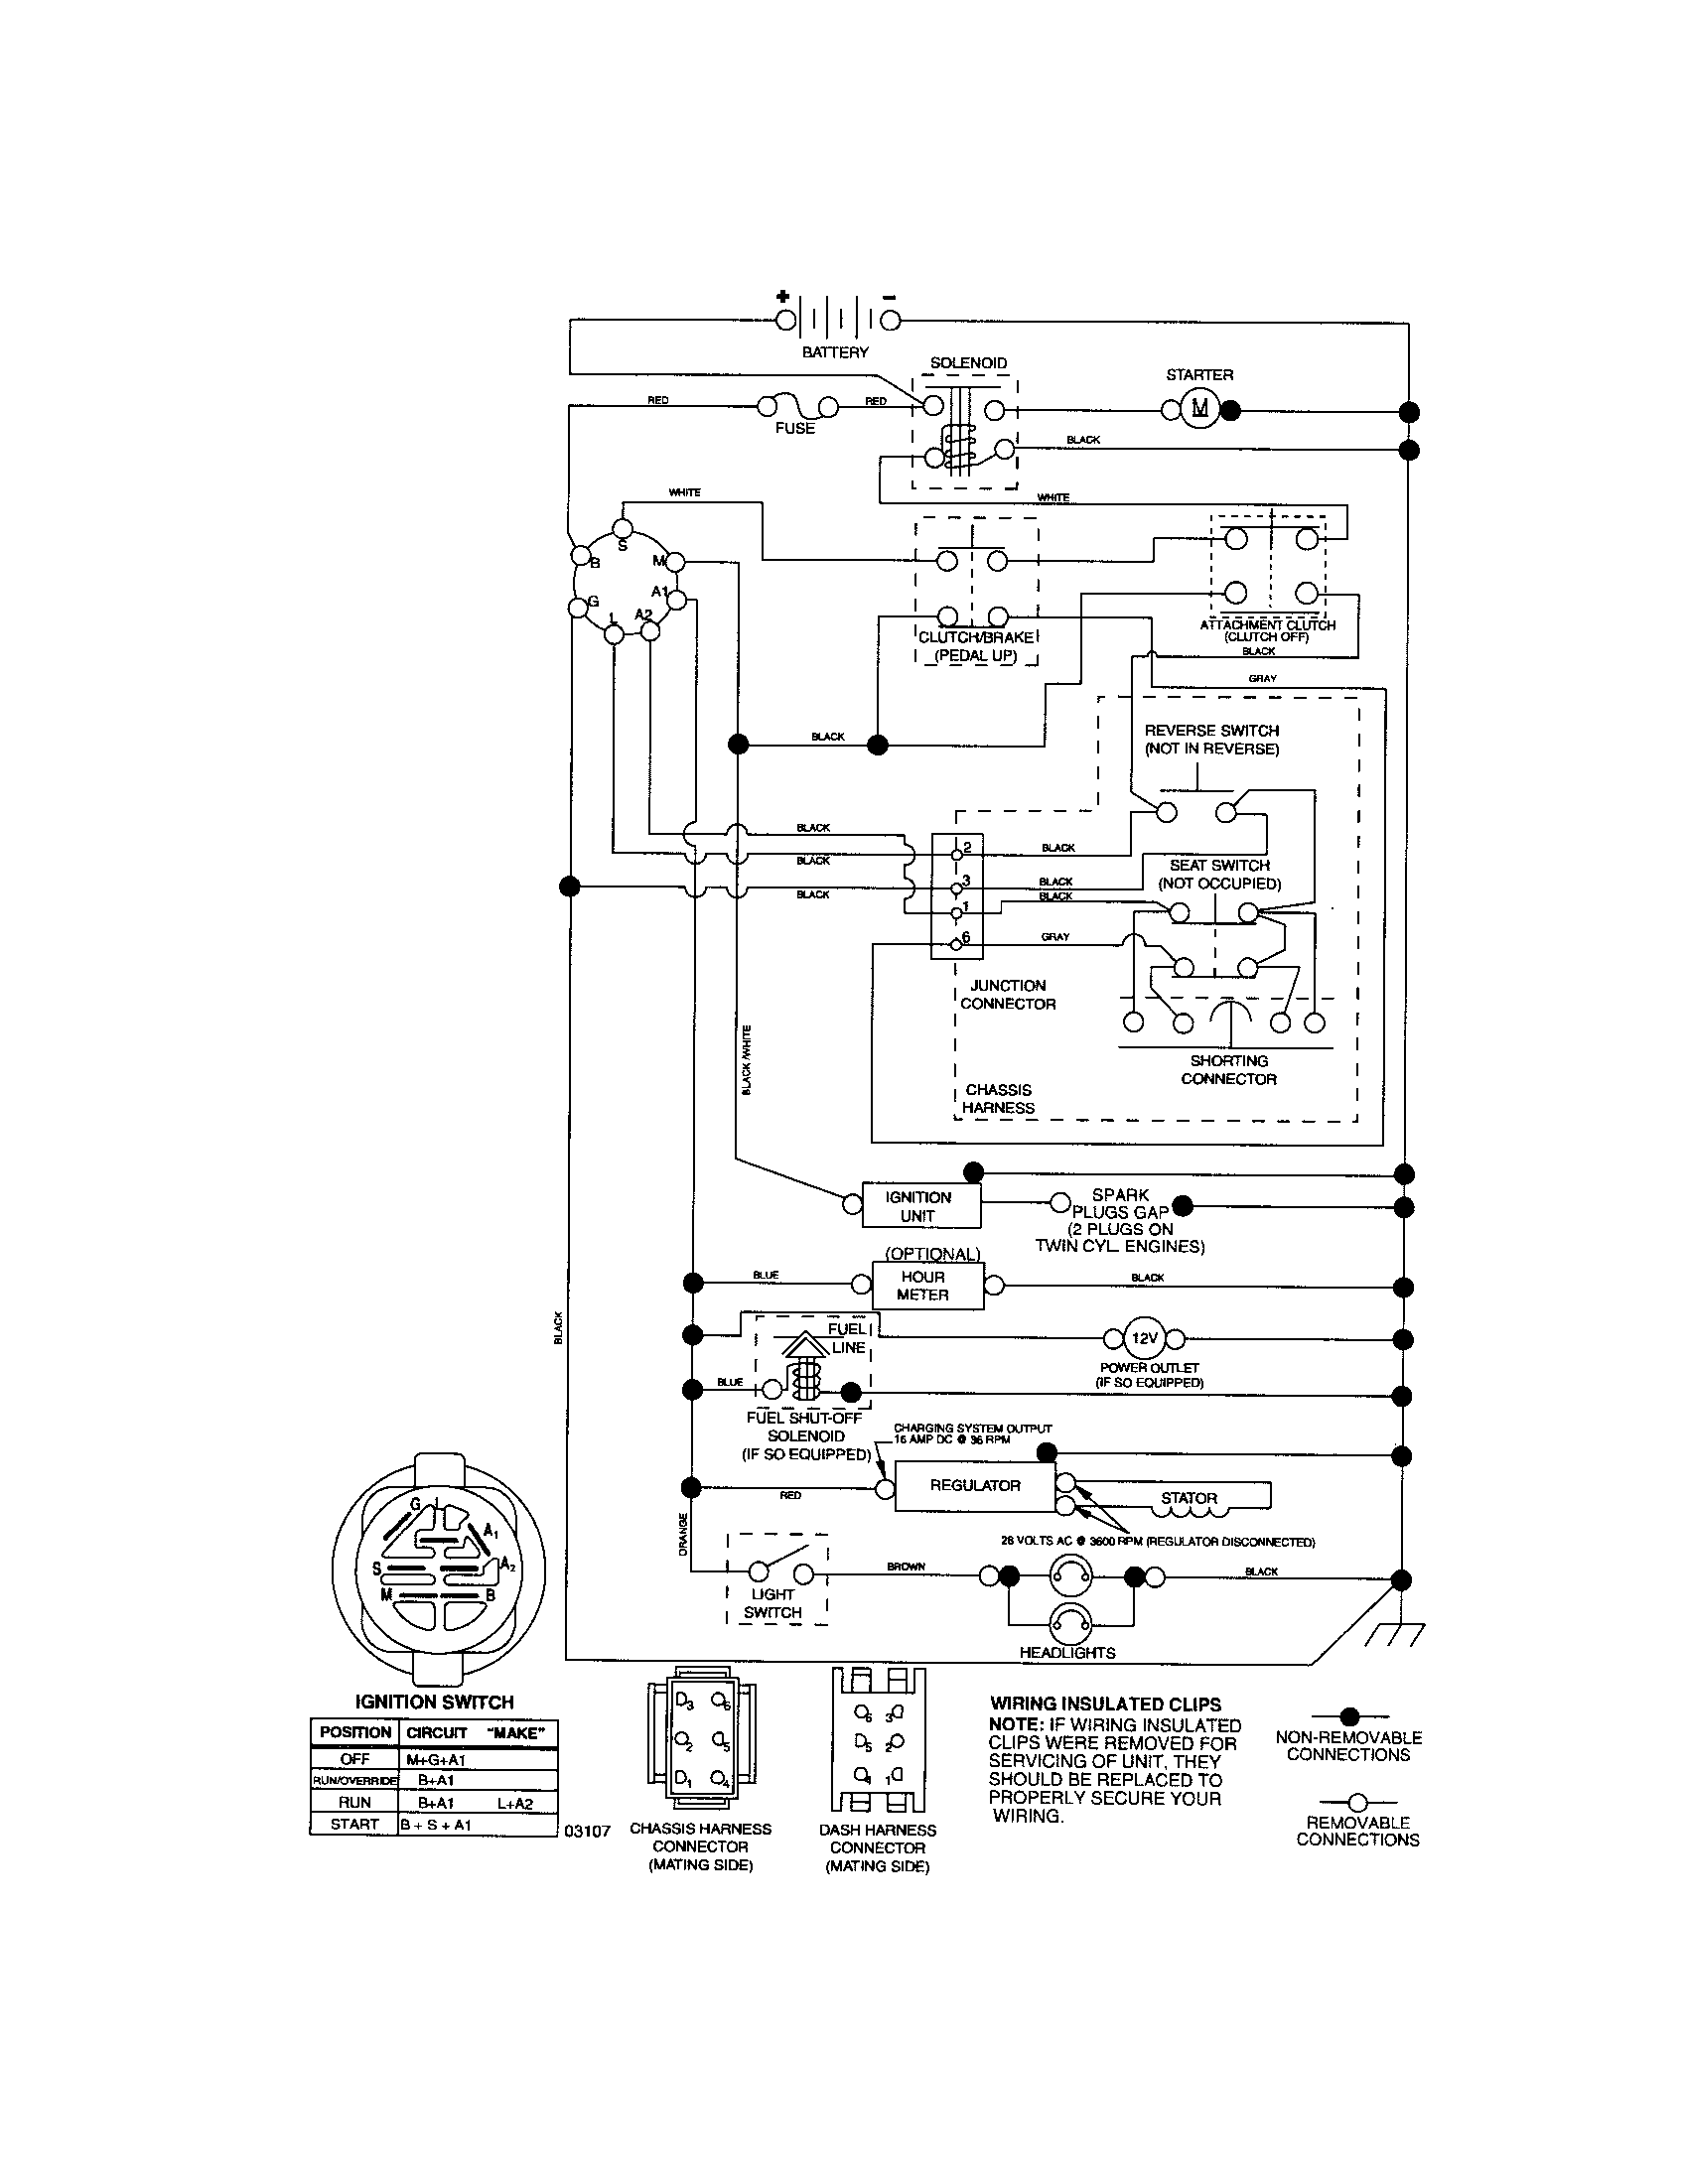 6af5f1447fd13c8443376822ddc1e105 craftsman riding mower electrical diagram wiring diagram small engine wiring diagram at readyjetset.co